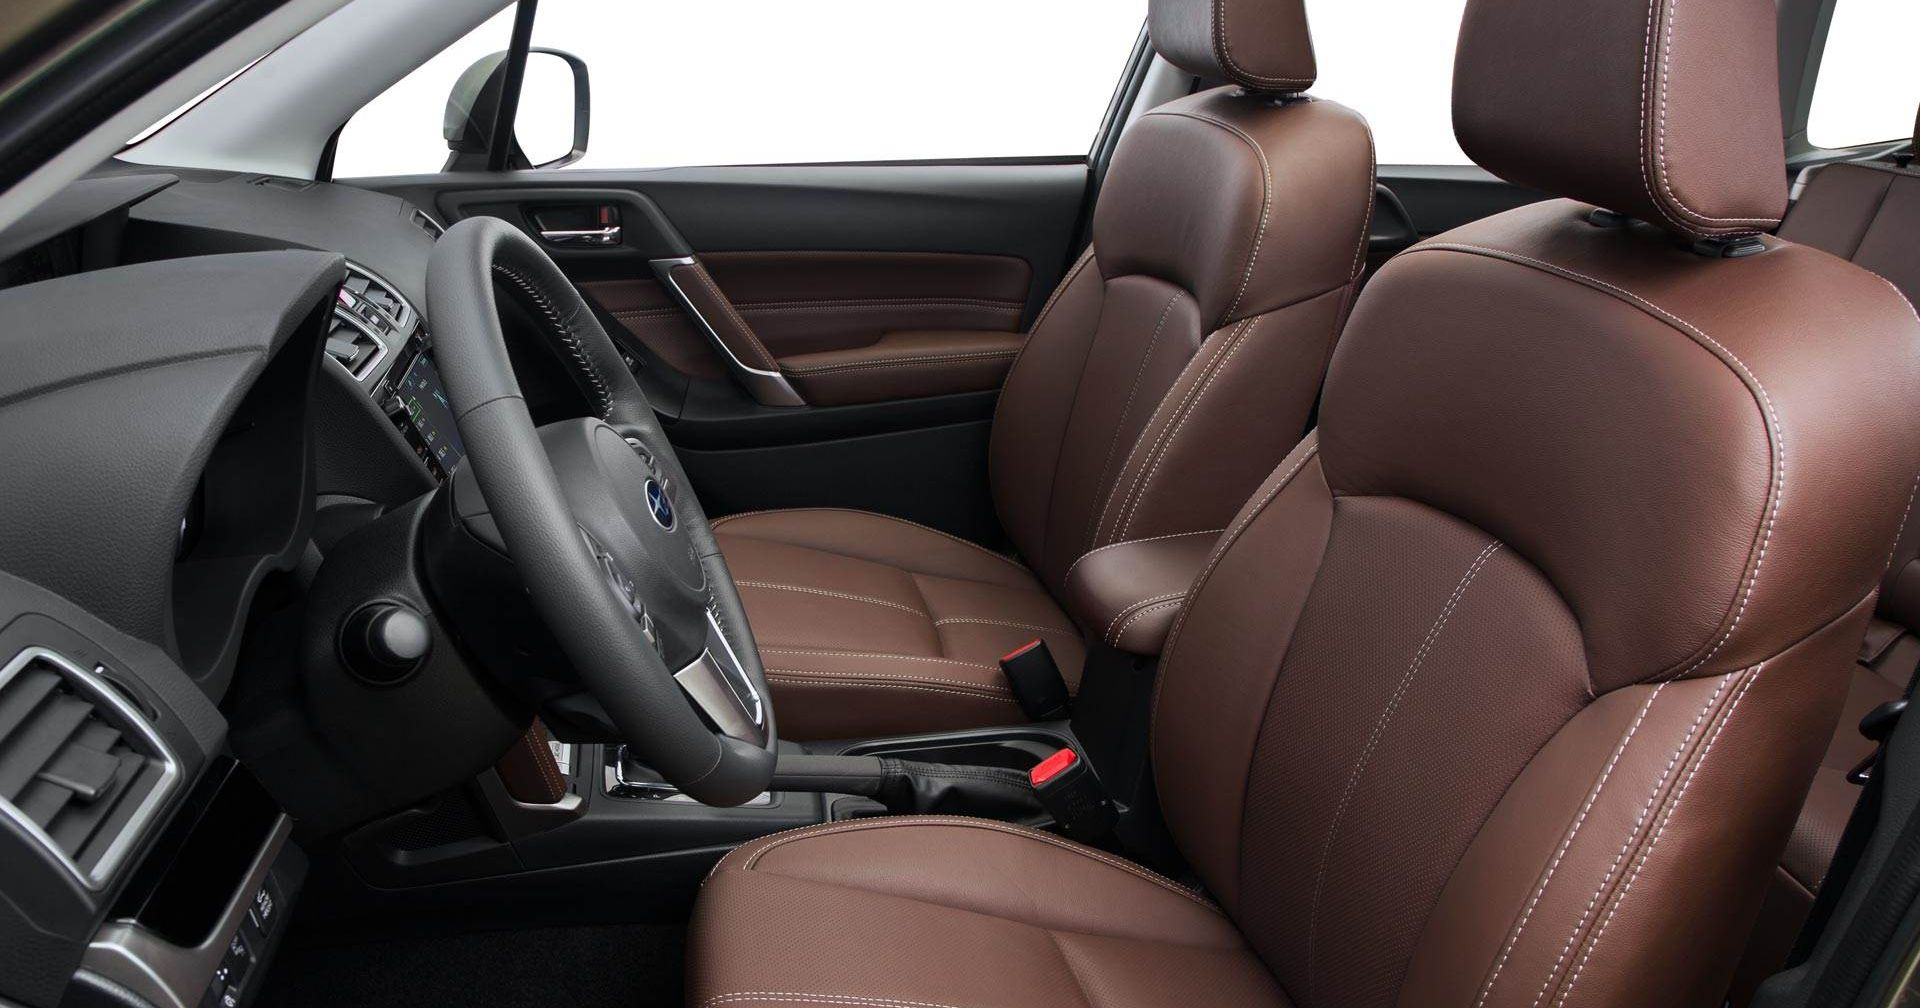 Forester Interior